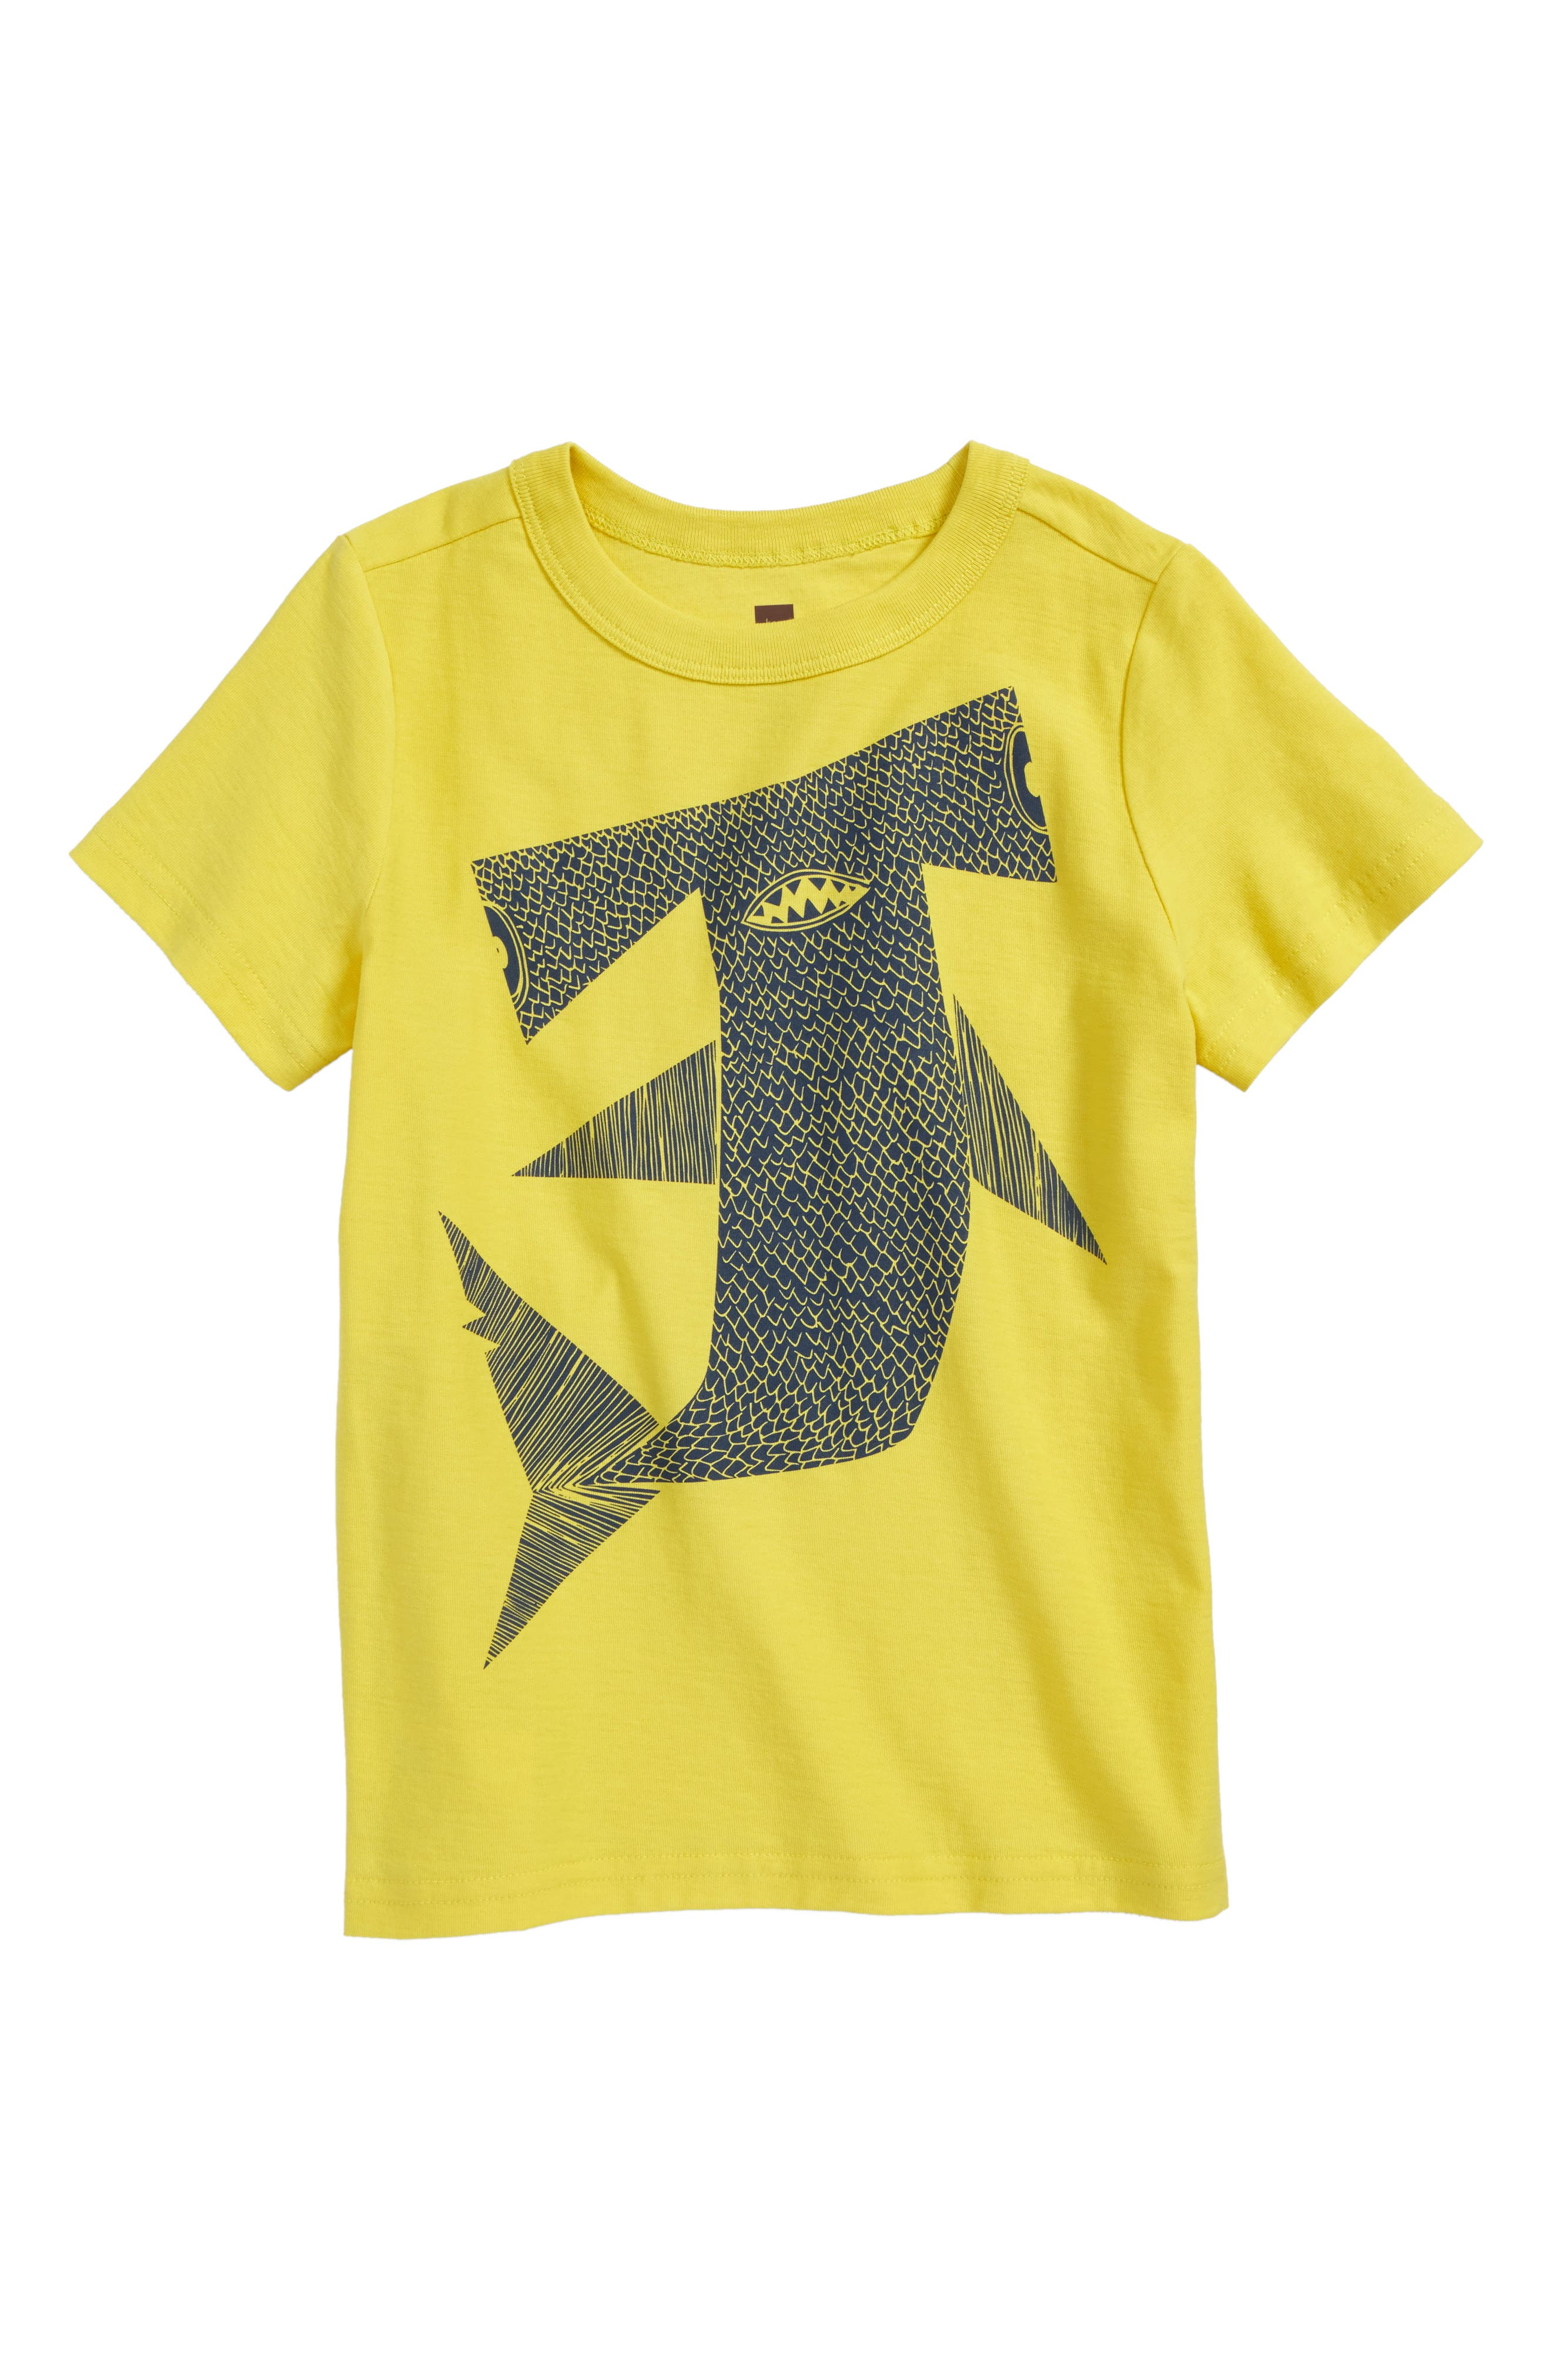 Hammer Time T-Shirt,                         Main,                         color, High Visibility